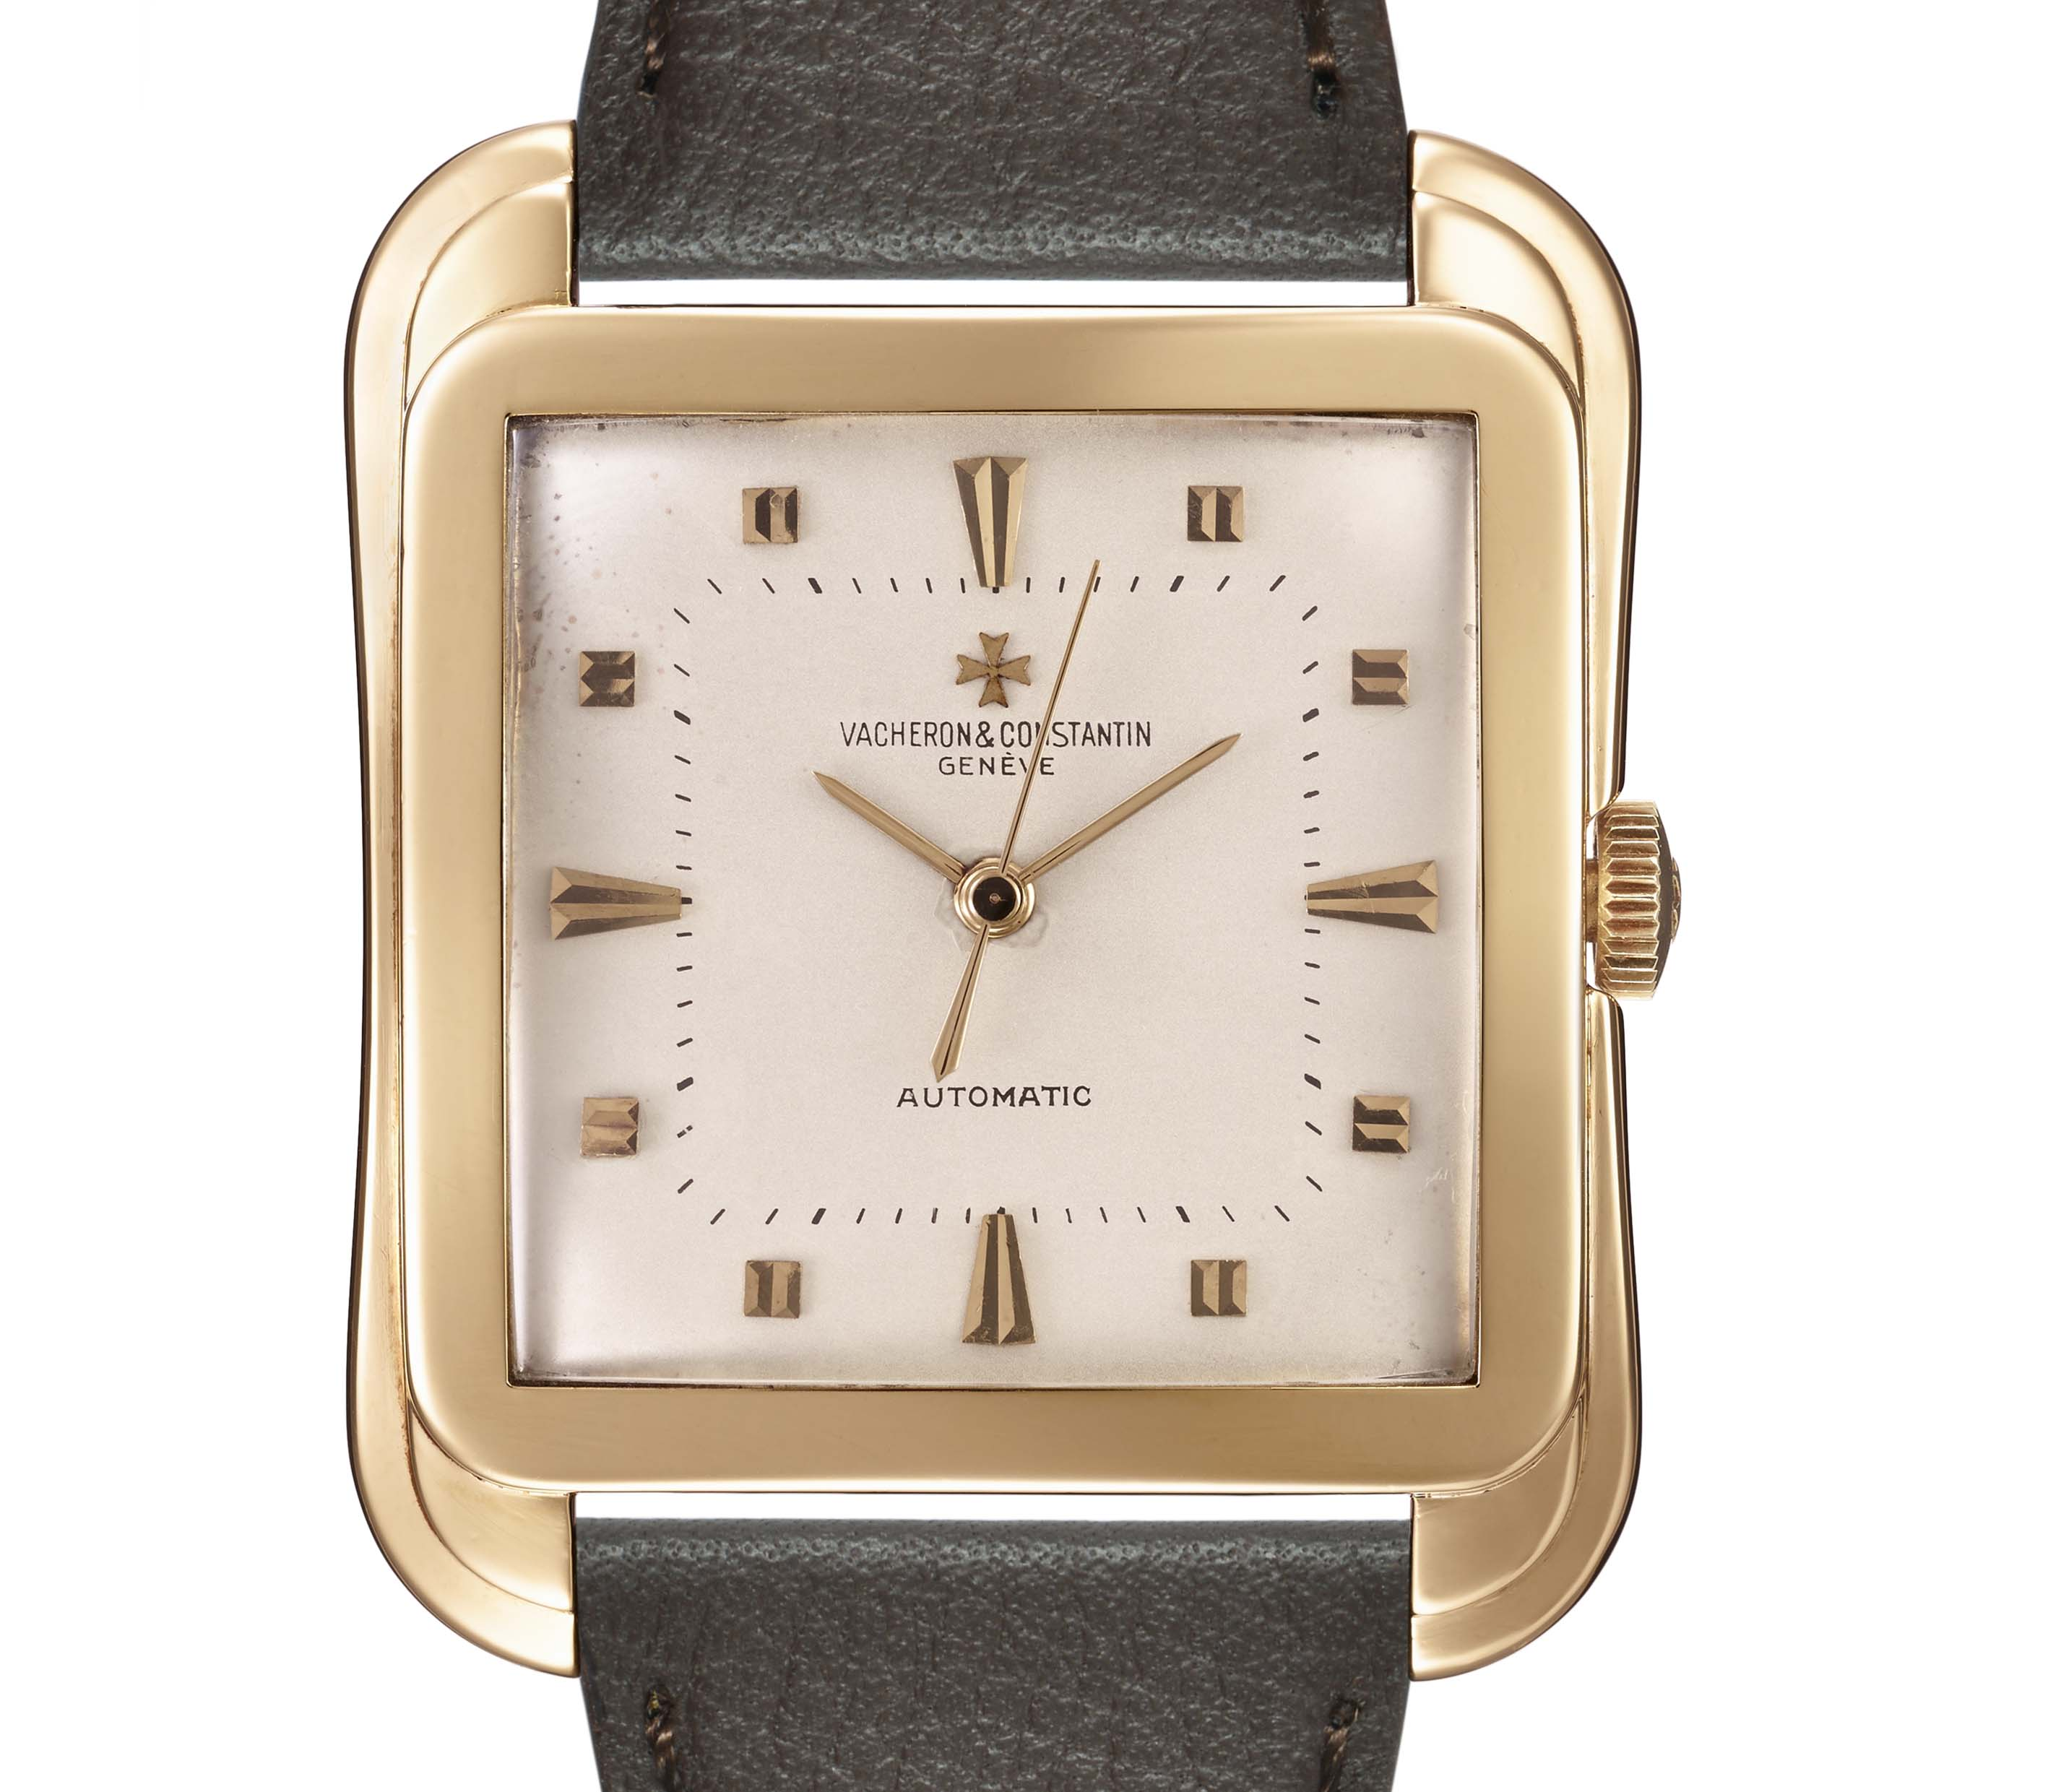 View 1 of Lot 5. VACHERON CONSTANTIN | 18K YELLOW GOLD AUTOMATIC GENTLEMAN'S WRISTWATCH, REF 6440.